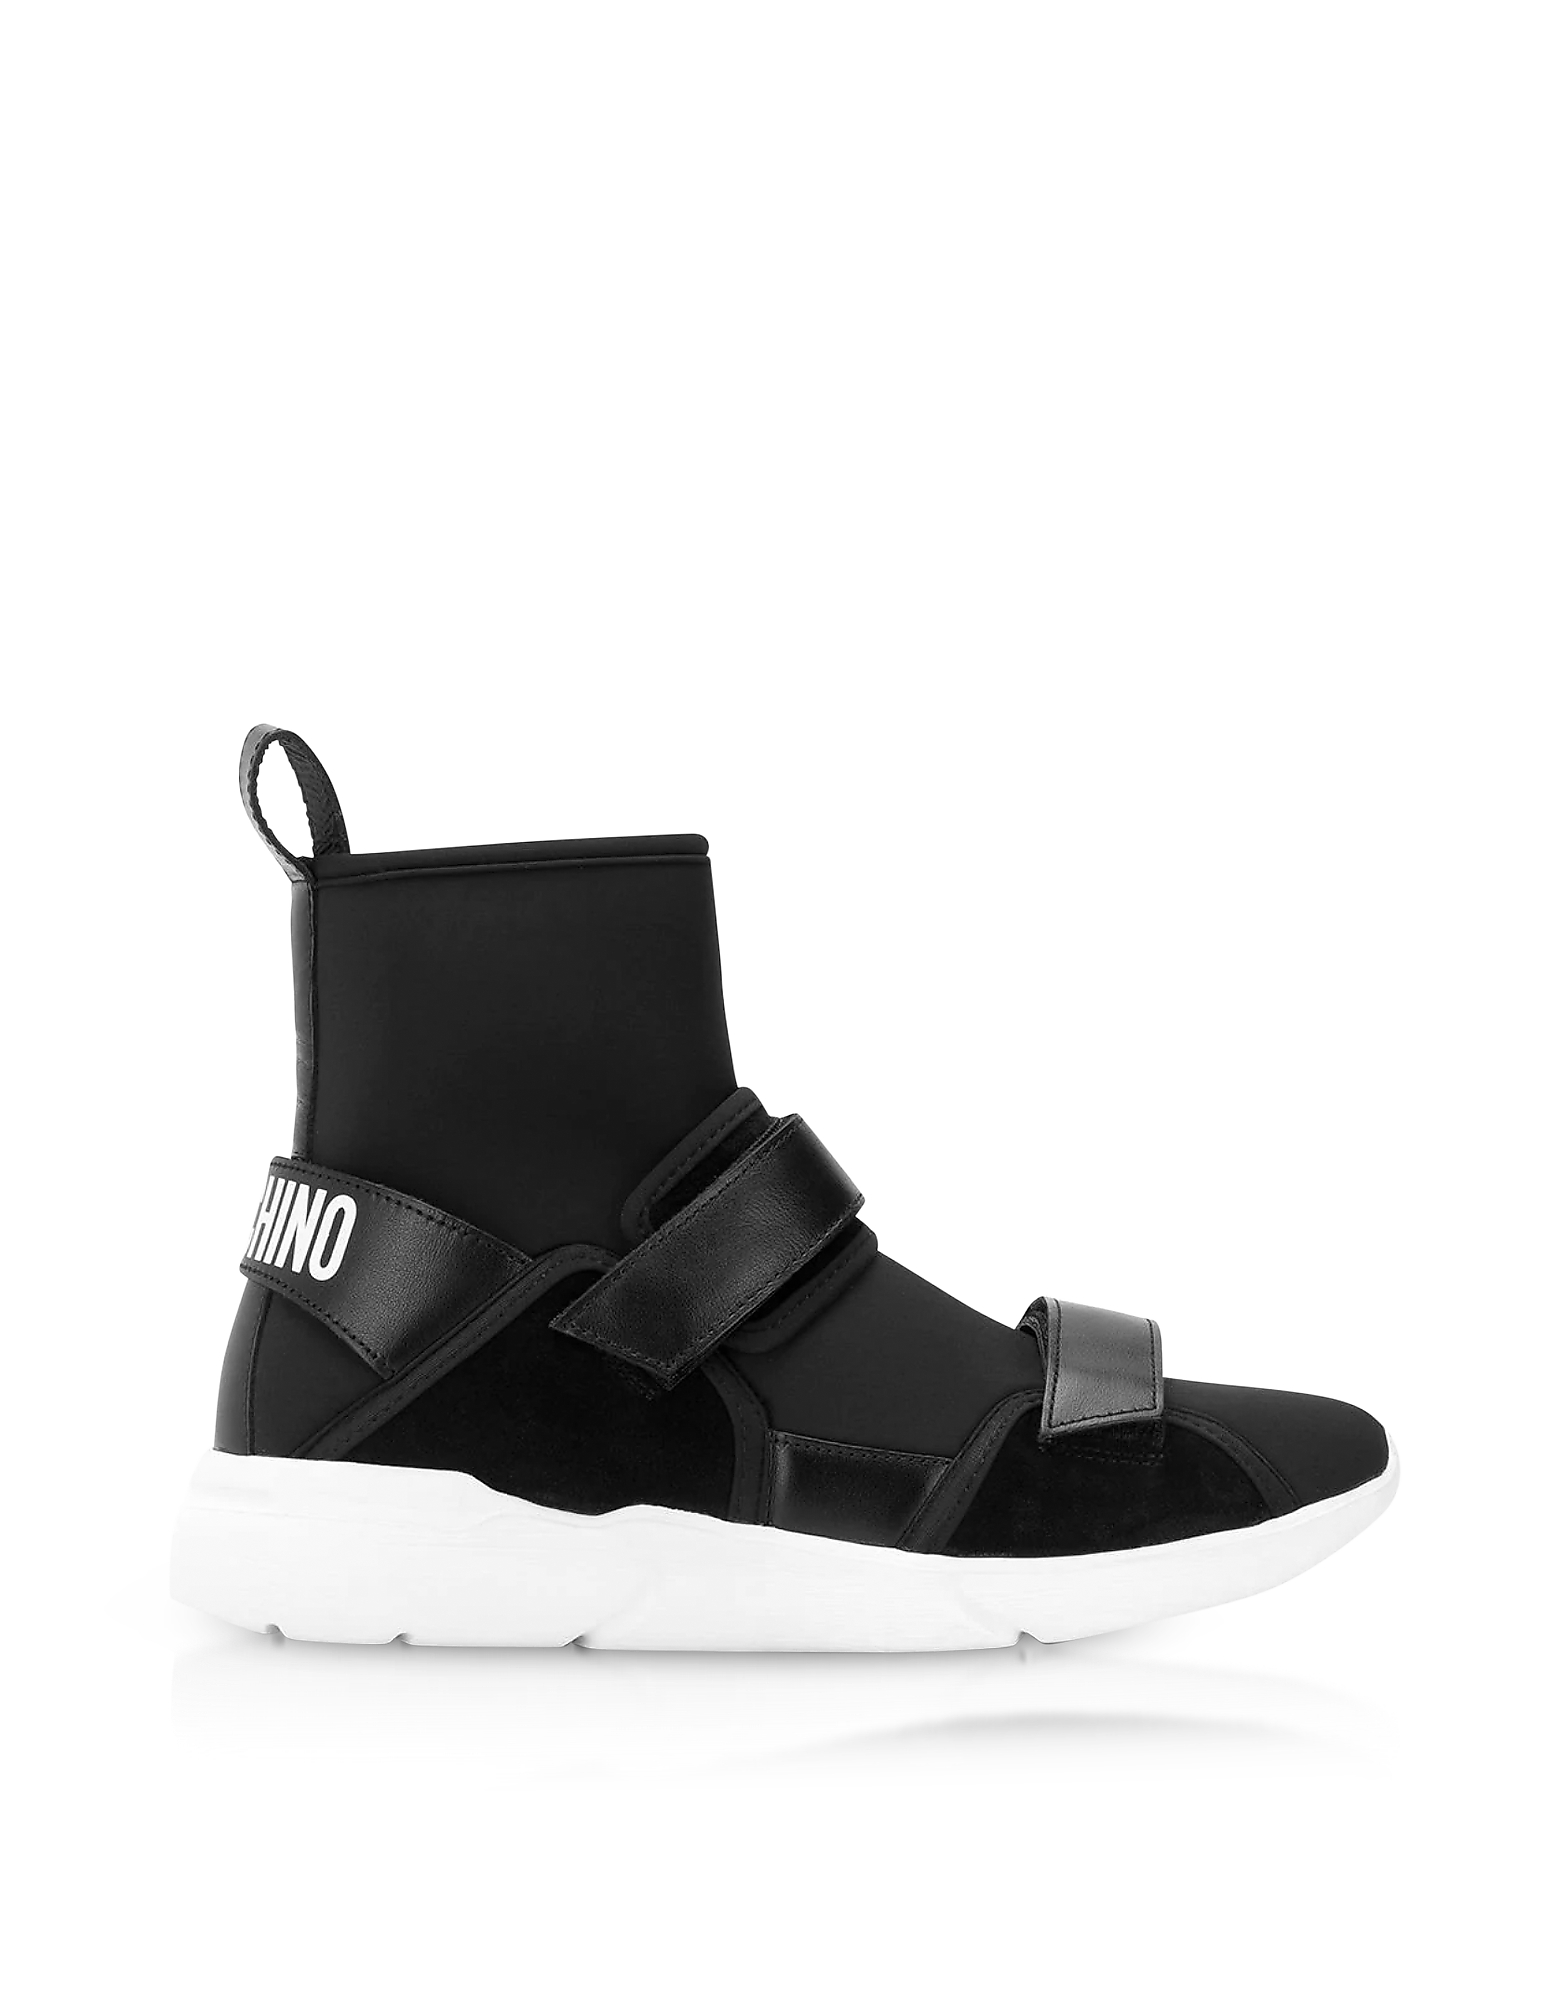 Ettore Black Neoprene High Top Sneakers w/Calf Leather and Suede Upper Straps